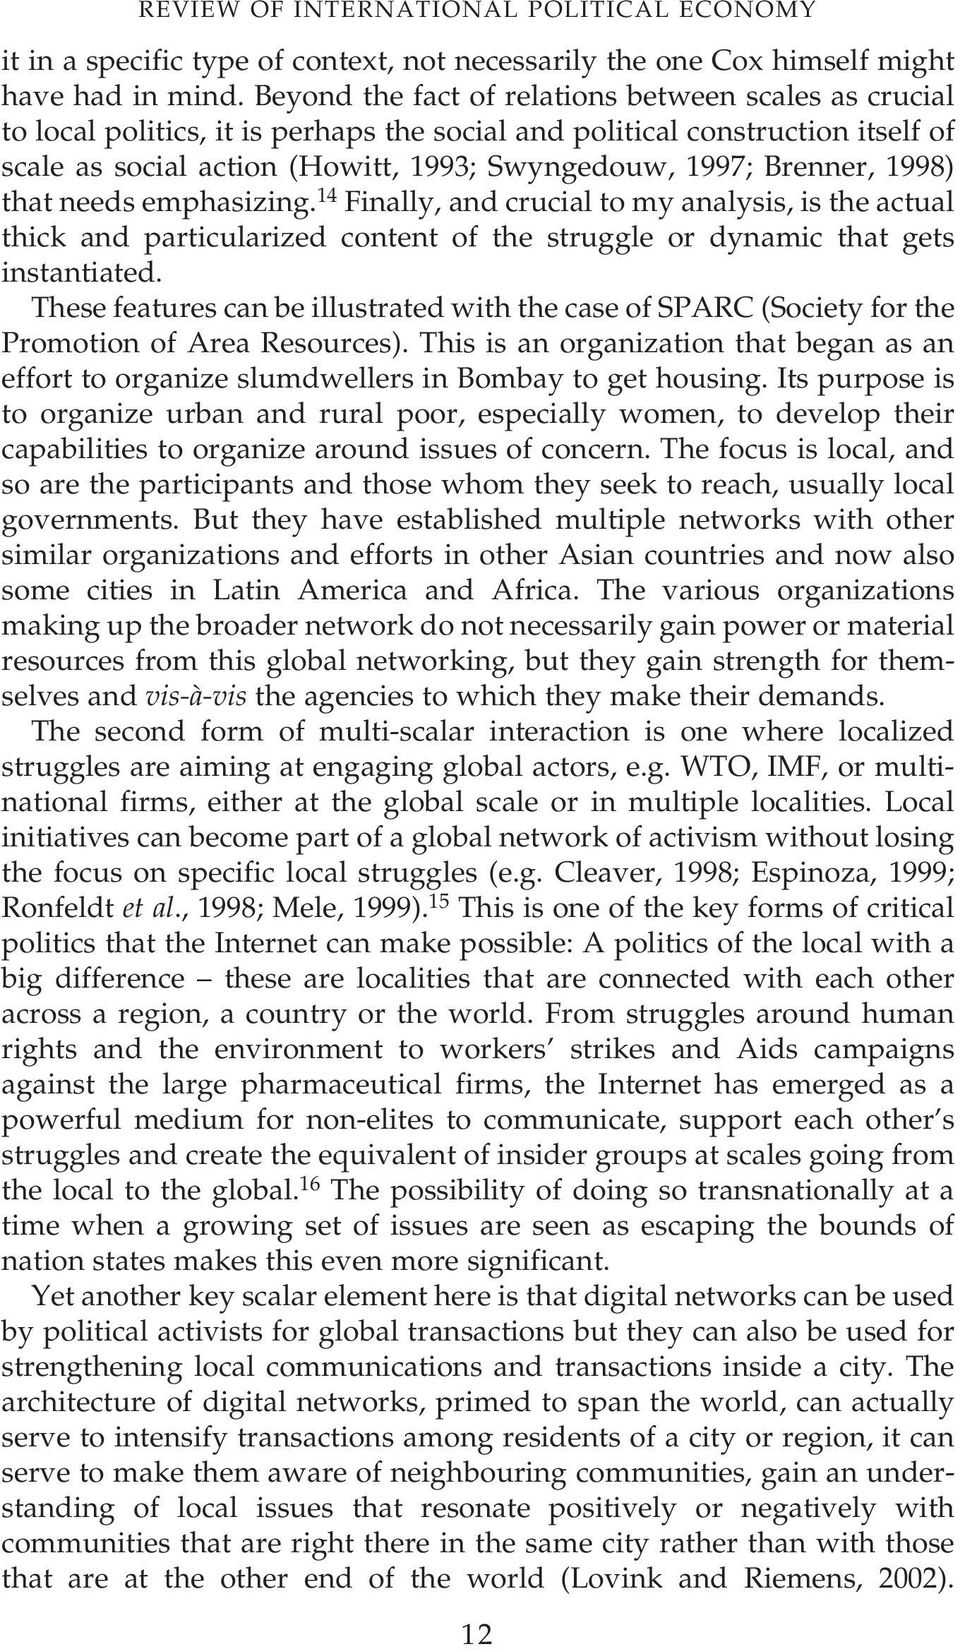 Brenner, 1998) that needs emphasizing. 14 Finally, and crucial to my analysis, is the actual thick and particularized content of the struggle or dynamic that gets instantiated.